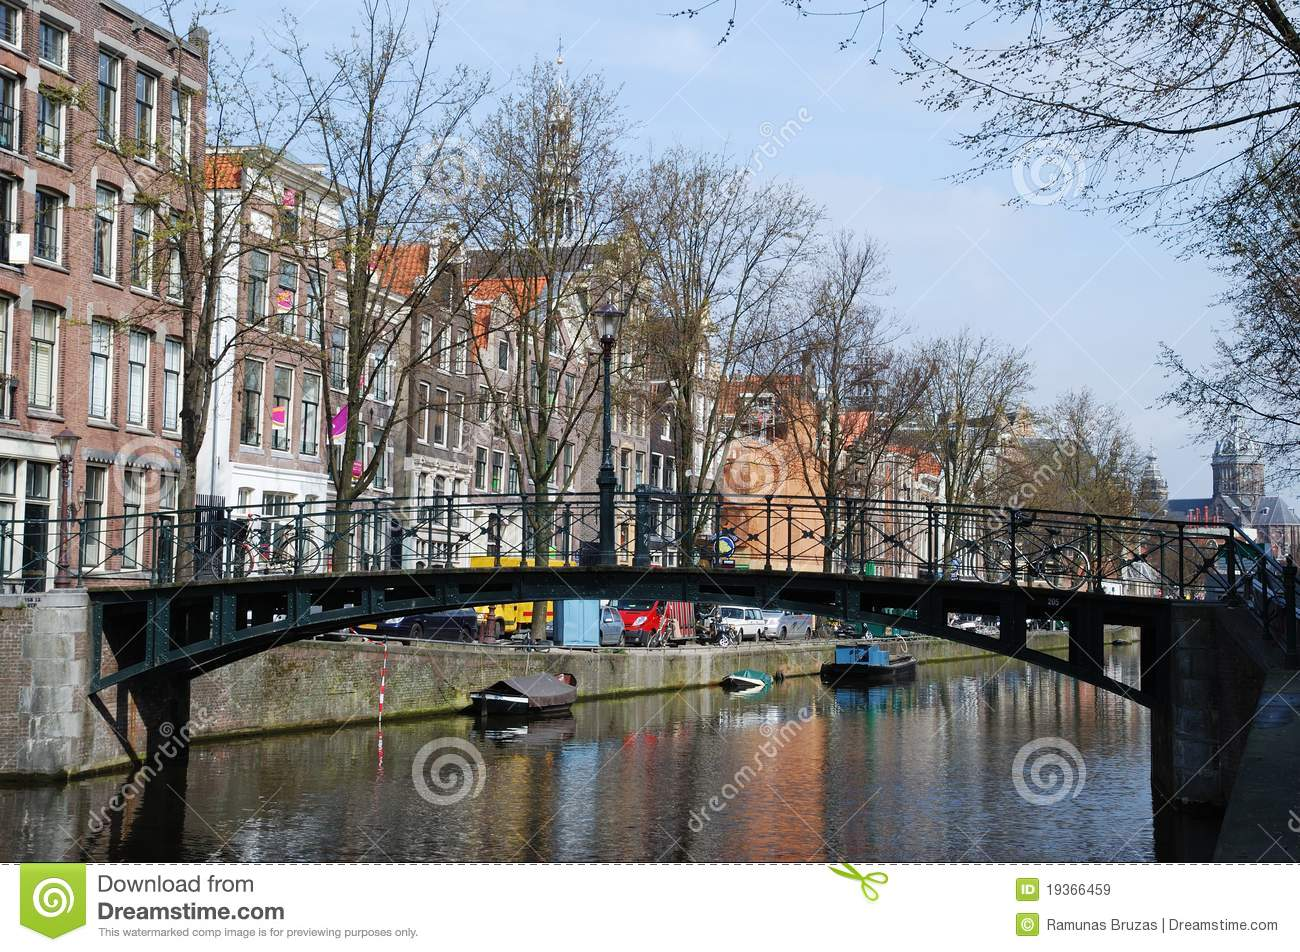 Free Images Traveling People Airport Bridge Business: Amsterdam Bridges Royalty Free Stock Images